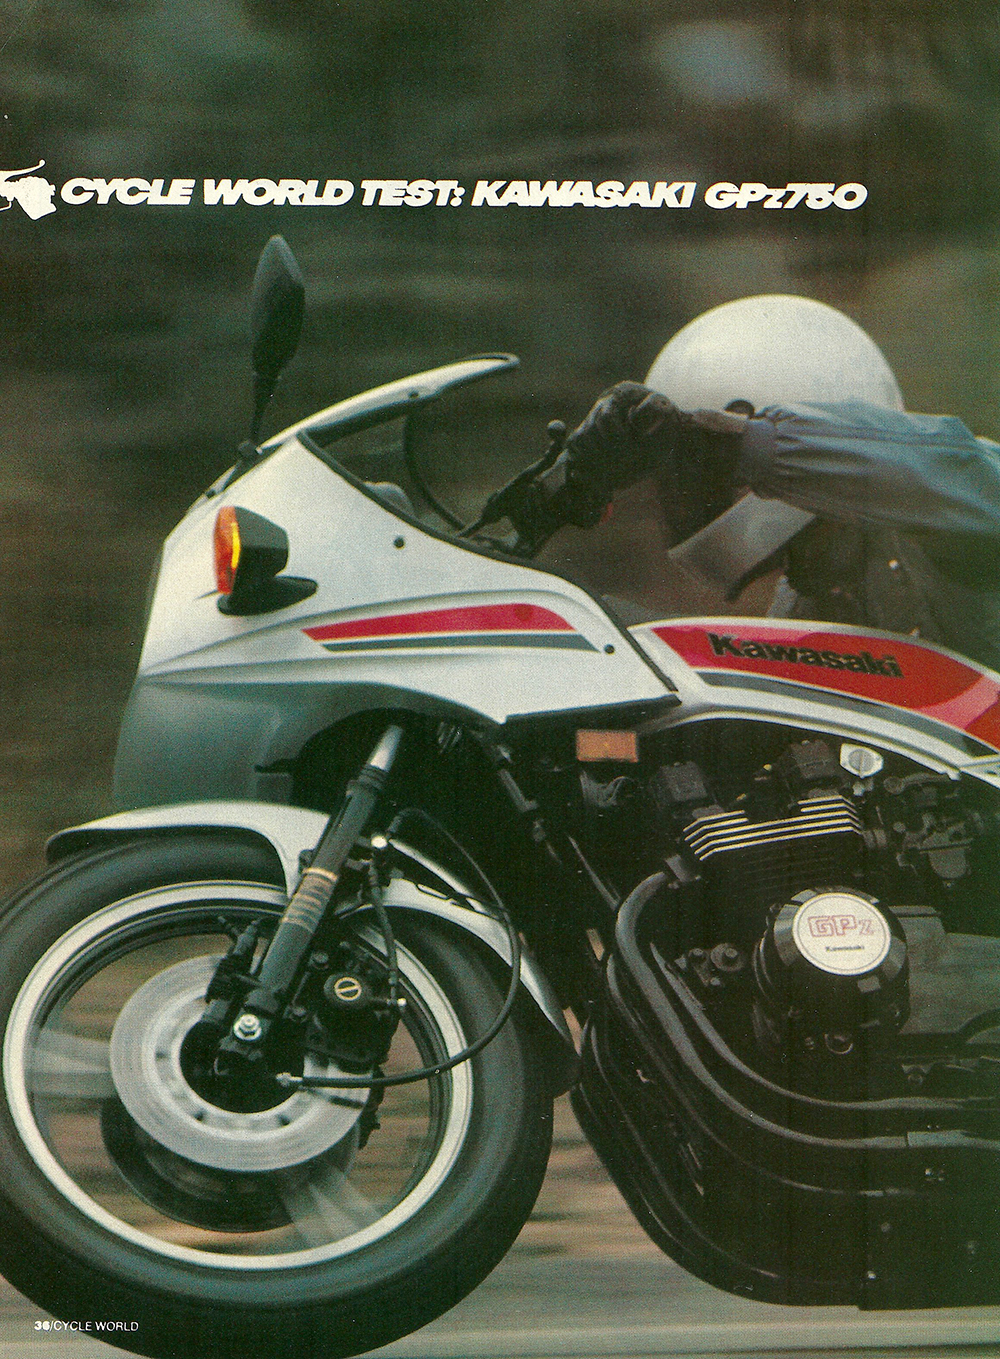 1984 Kawasaki GPz750 road test 01.jpg